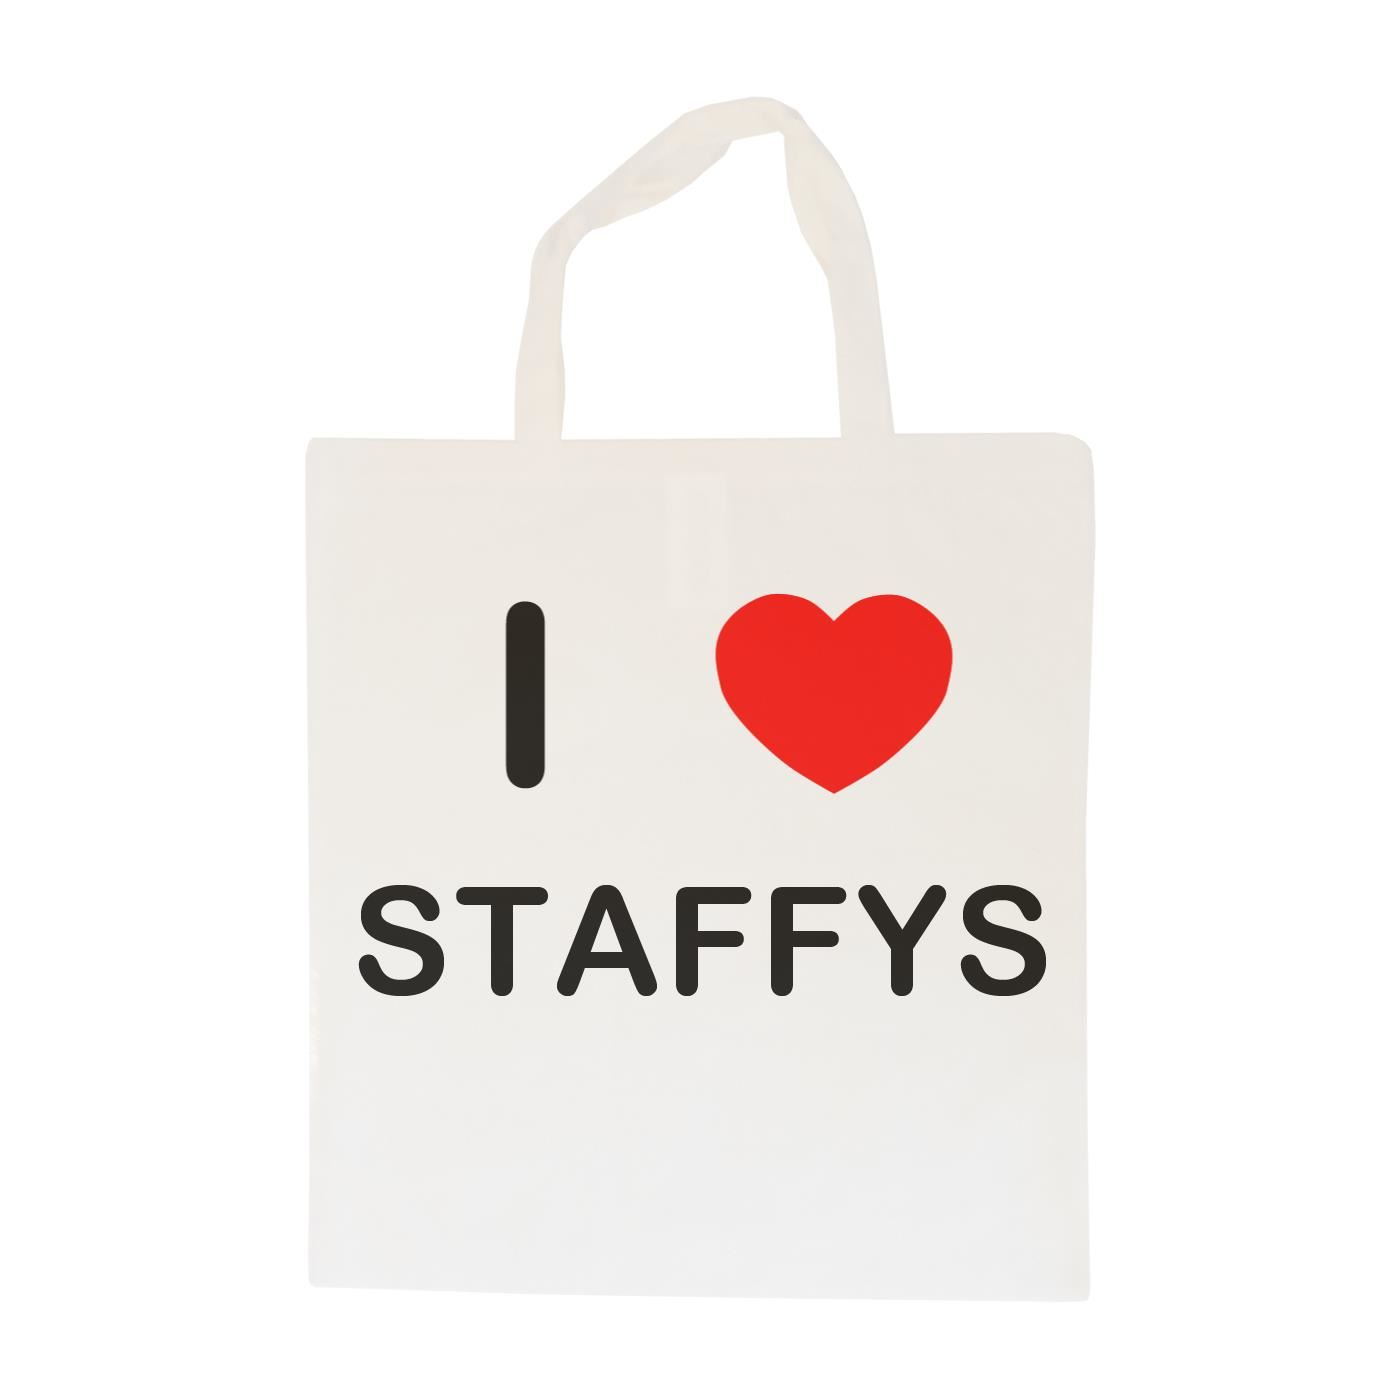 I Love Staffys - Cotton Bag | Size choice Tote, Shopper or Sling